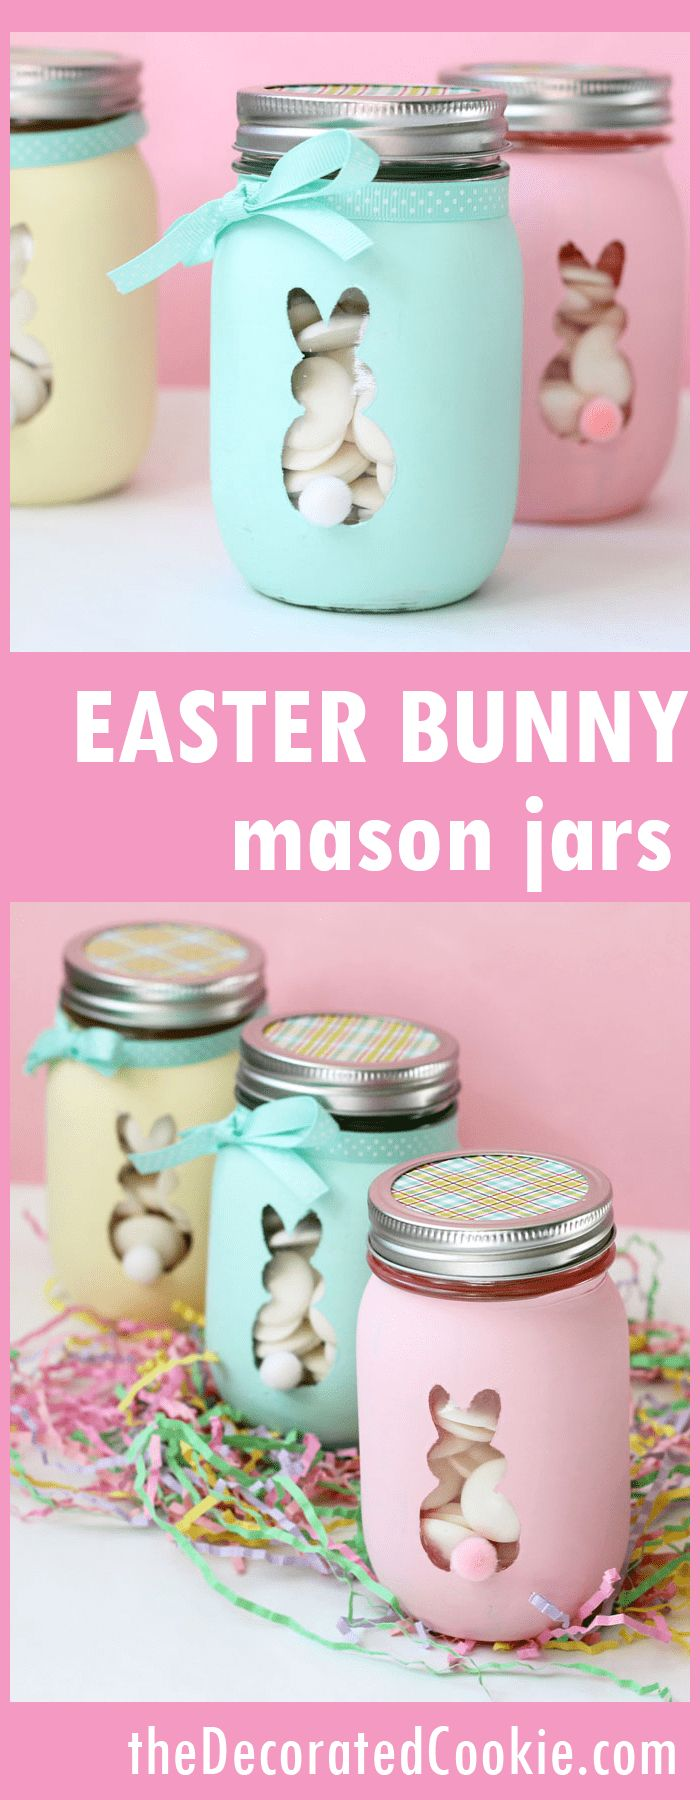 11562 best mason jar crafts images on pinterest mason jar crafts 11562 best mason jar crafts images on pinterest mason jar crafts mason jar projects and jars negle Gallery